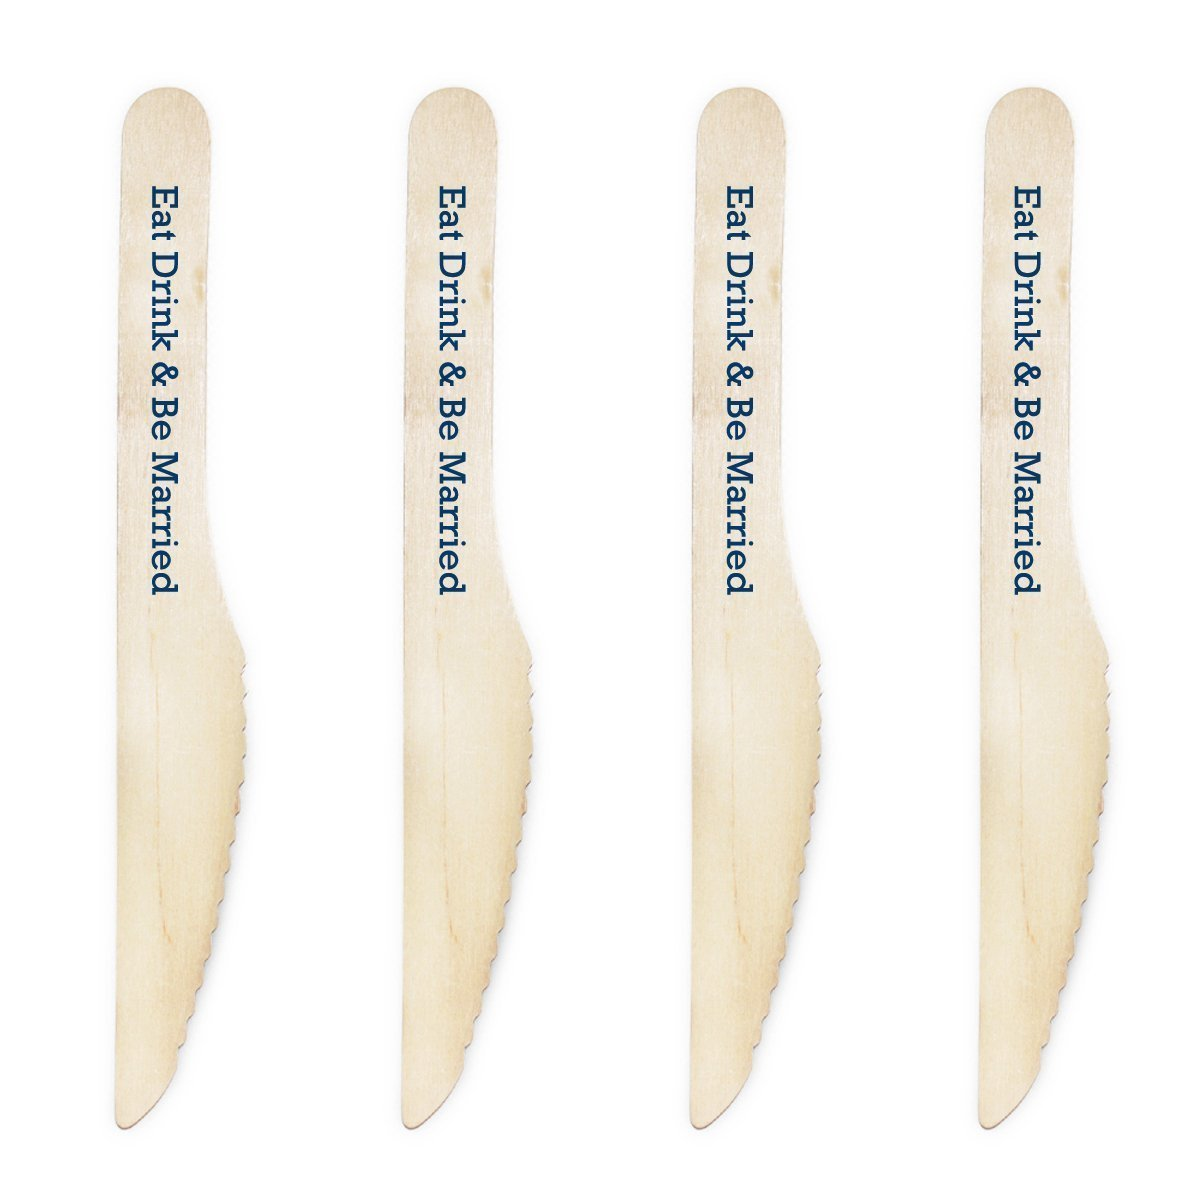 Dress My Cupcake Natural Wood Candy 200-Pack Buffet Knives DIY Kit, Eat Drink and be Married, Harbor